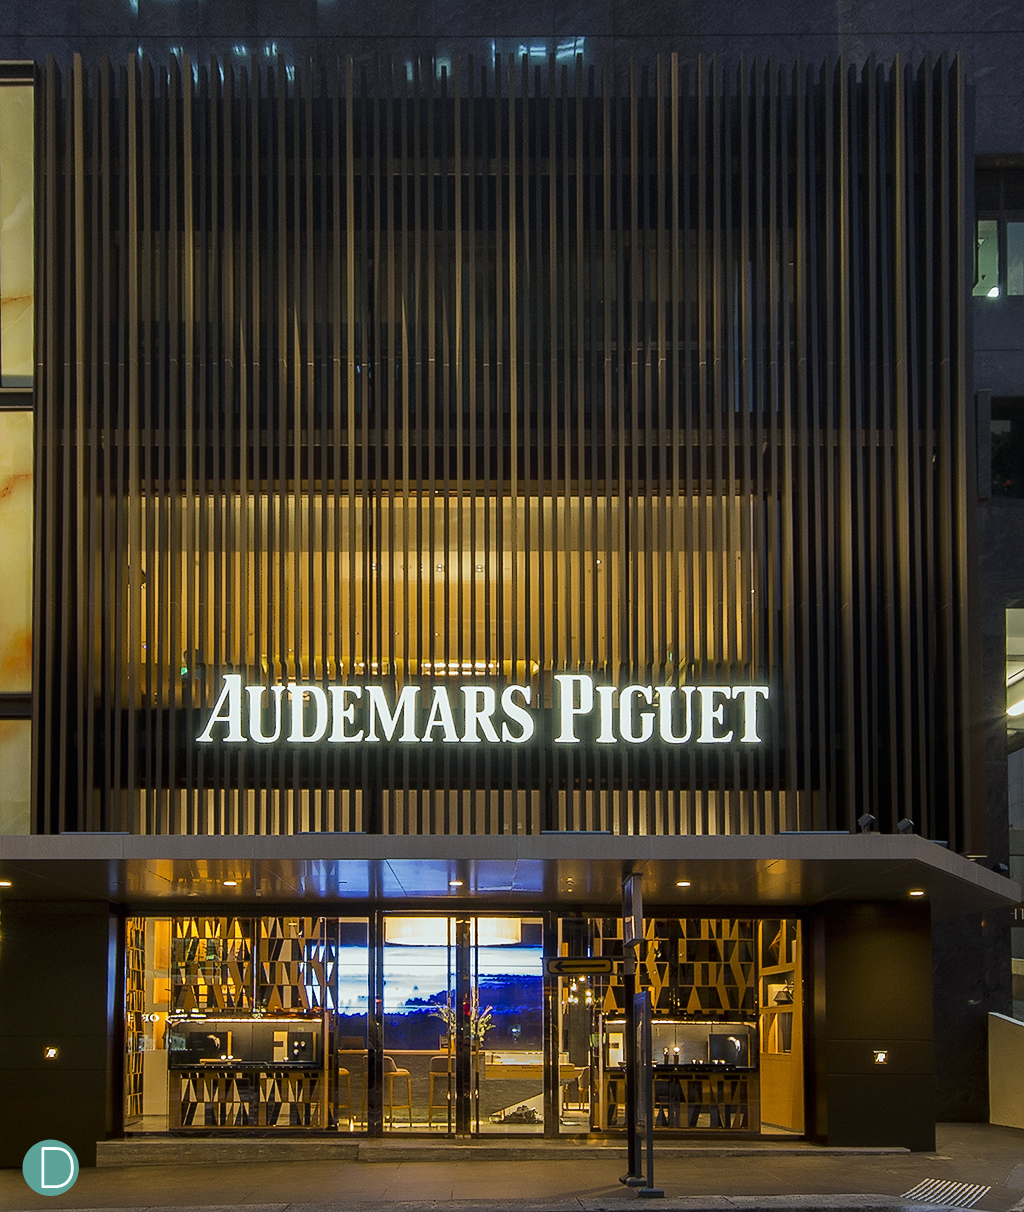 The new facade of the Audemars Piguet Flagship boutique at Liat Towers features a 10 meter high, 3 storey structure.